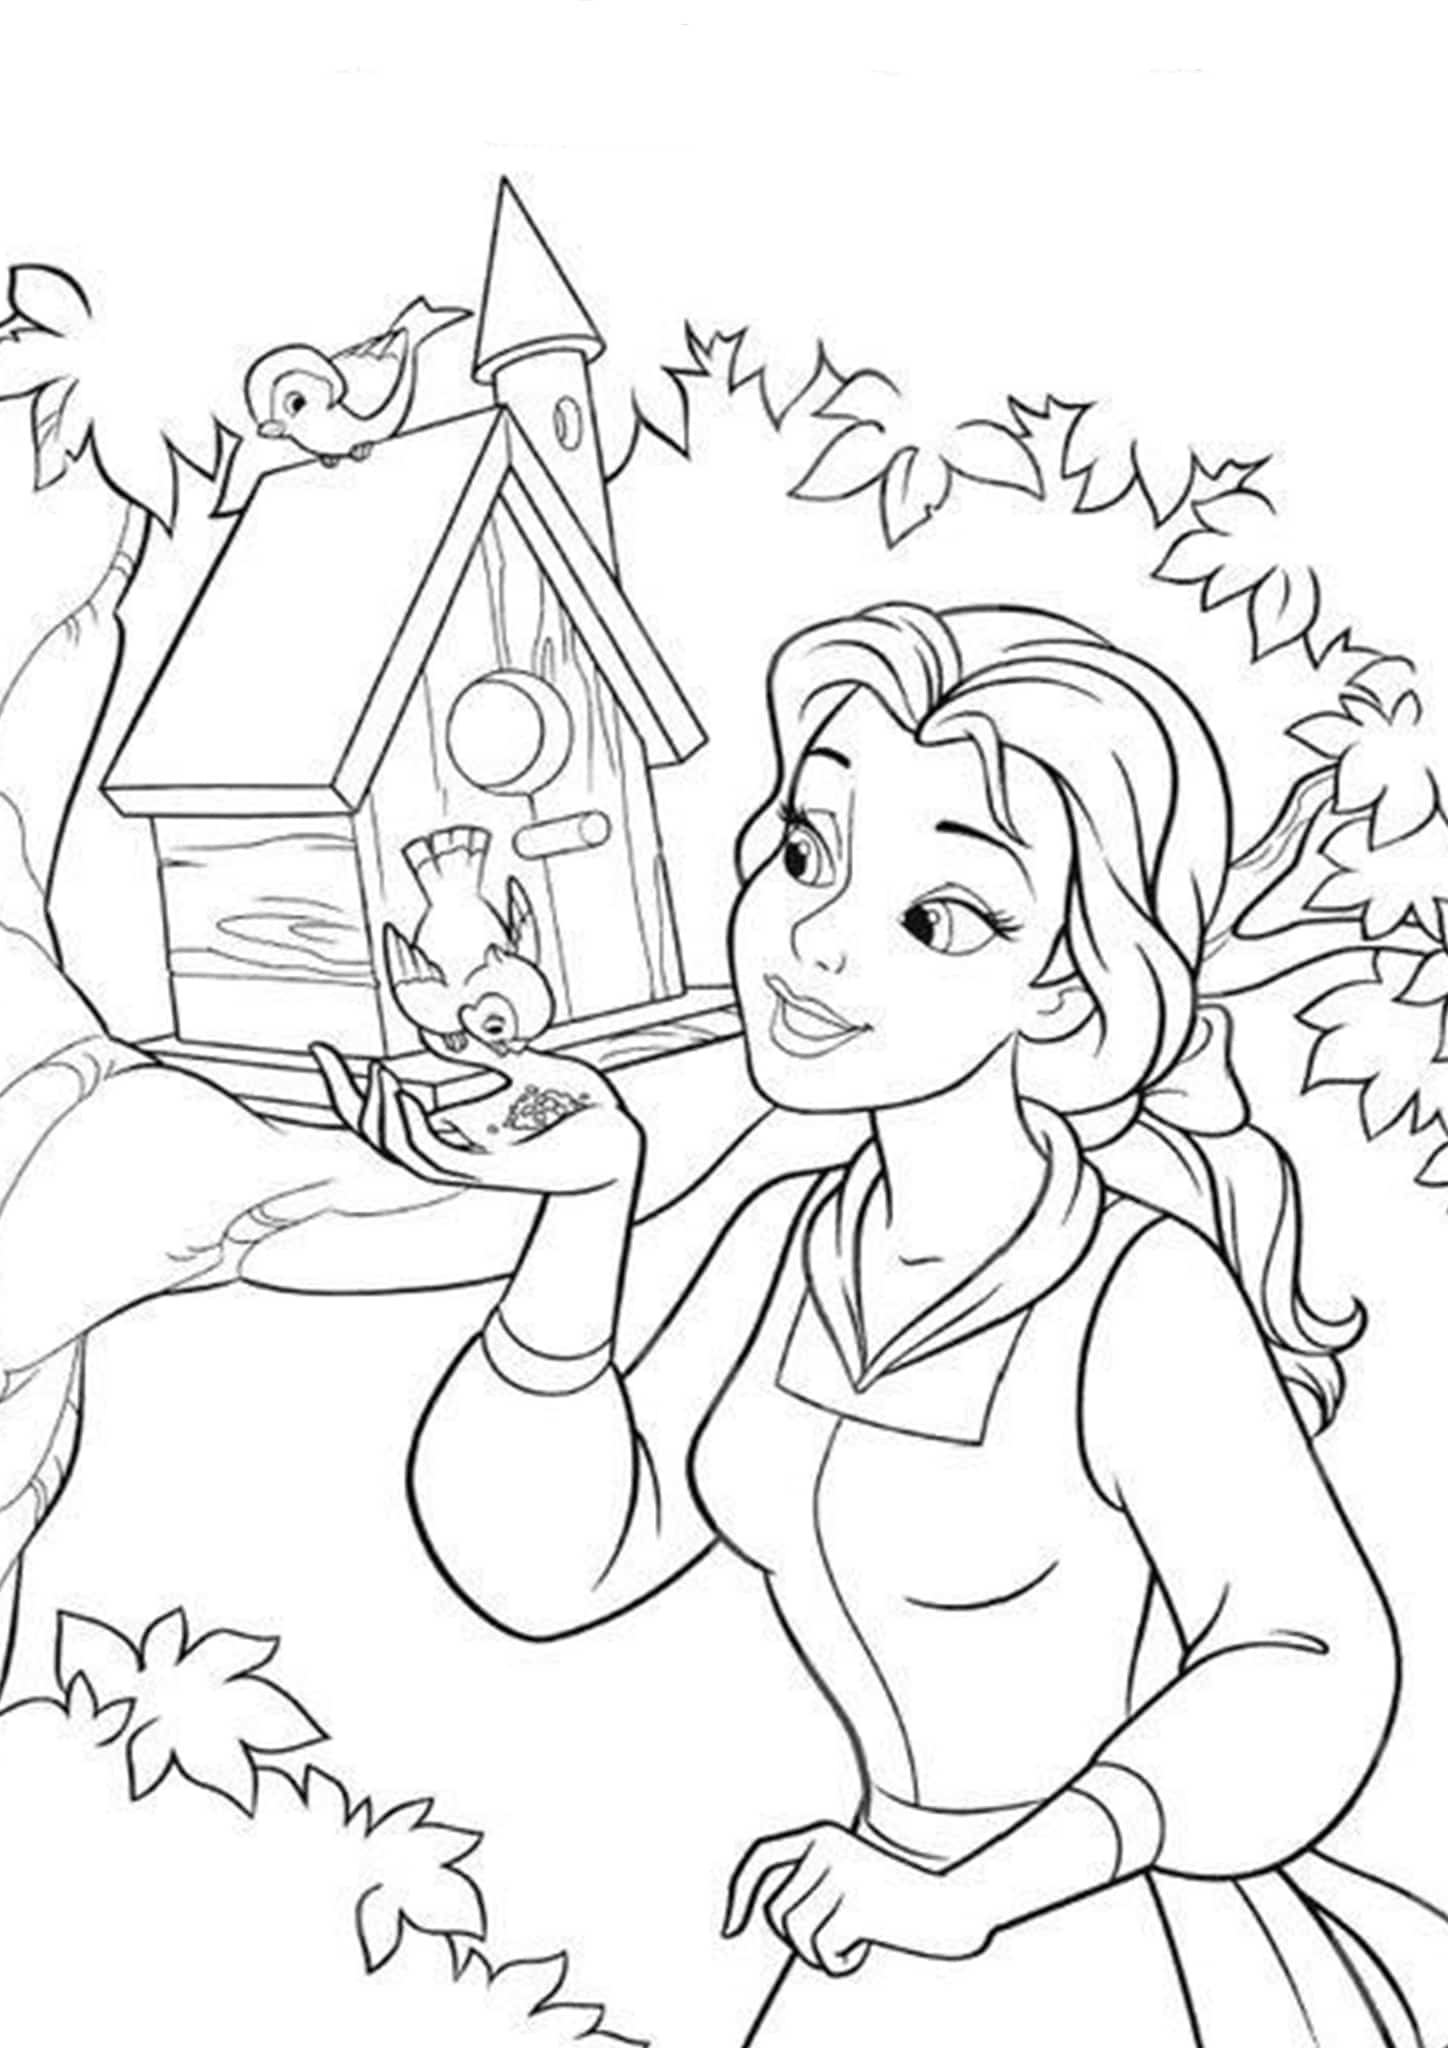 beauty and the beast colouring page beauty and the beast coloring pages beauty page colouring the and beast